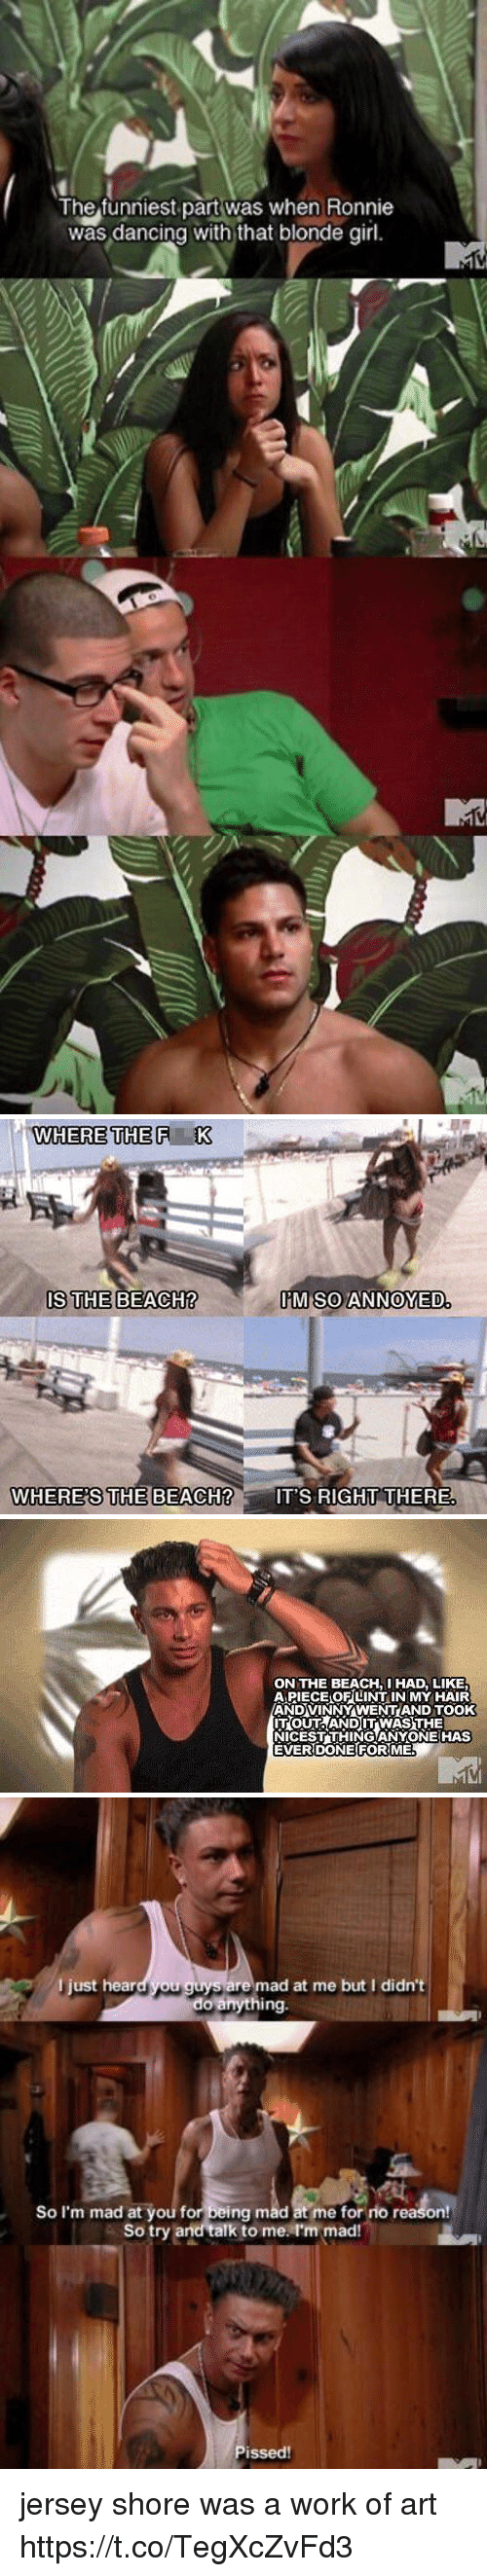 Dancing, Work, and Beach: The funniest part was when Honnie  was dancing with that blonde girl.   WHERE THE F  K  IS THE BEACH?  IM SO ANNOYED  WHERES THE BEACH?  IT'S RIGHT THERE   ONTHE BEACH, I HAD, LIKE  APIECEOF LINT IN MY HAIR  ANDVINNYAWENTAND TOOK  ITOUTTAANDITWASUHE  NICEST THINGANYONE HAS  EVER DONE FOR ME   l just hear  ou guys are mad at me but I didn't  do anything.  So I'm mad at you for being mad at me for no reason!  So try and talk to me I'm mad!  Pissed! jersey shore was a work of art https://t.co/TegXcZvFd3